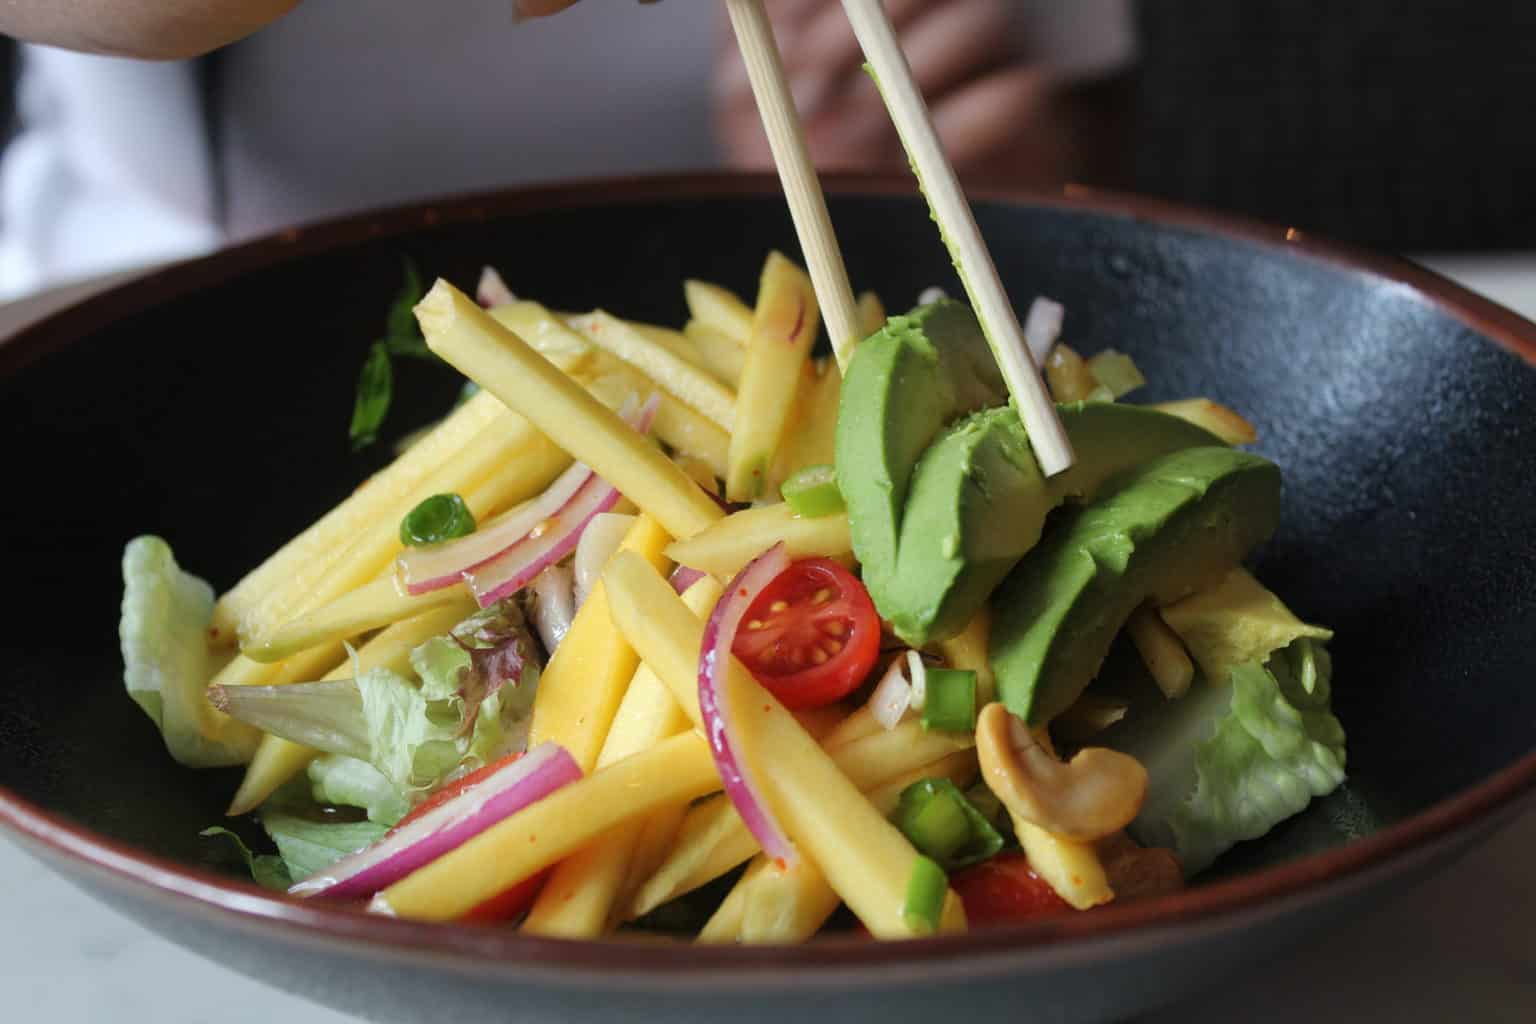 Bangkok cuisine upper east side the buppie foodie for Aura thai fusion cuisine new york ny